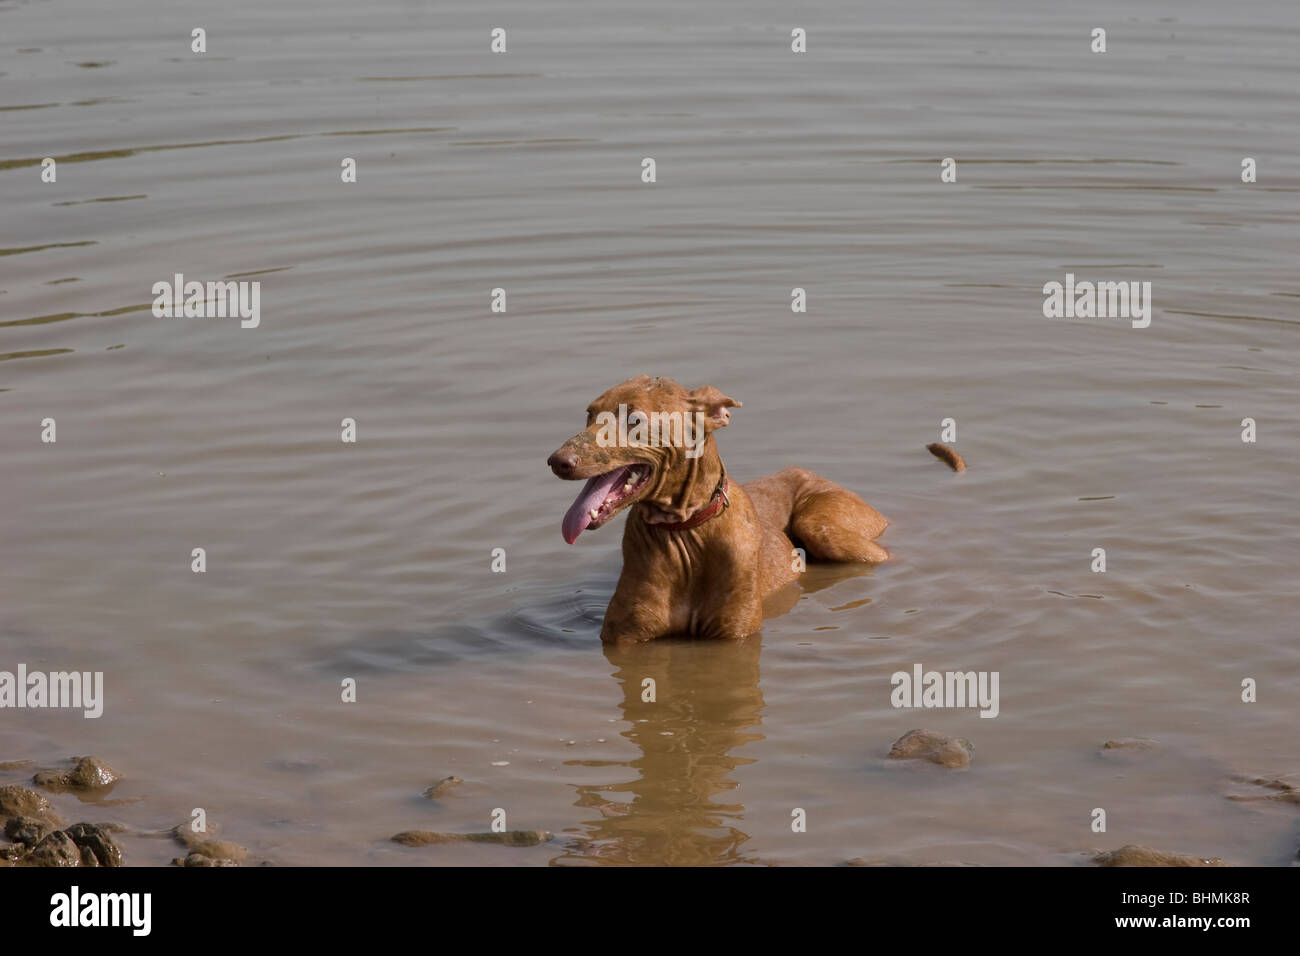 Refuge Dog sitting in water cooling down on a hot day in Tenerife - Stock Image